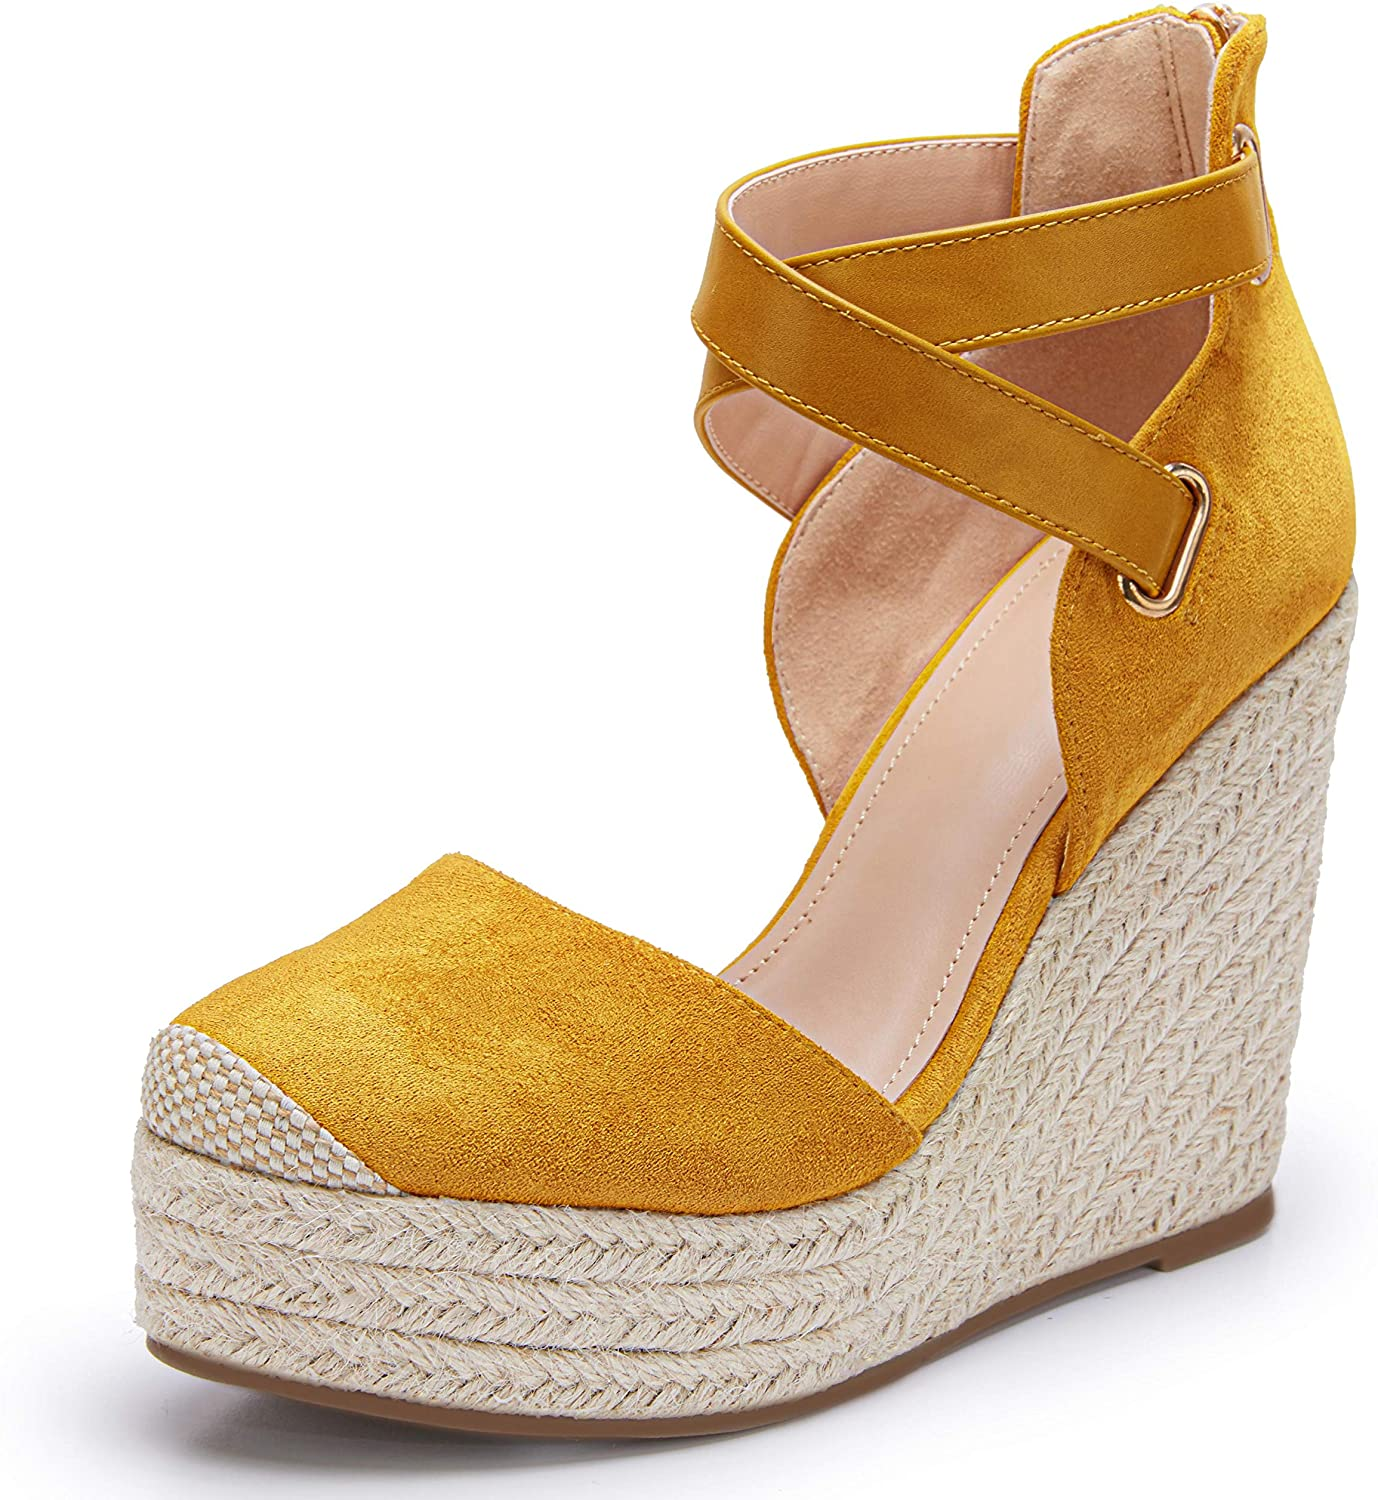 PiePieBuy Womens Wedge Espadrille Ankle Manufacturer OFFicial shop Strap Max 52% OFF Toe Cap Pla Closed